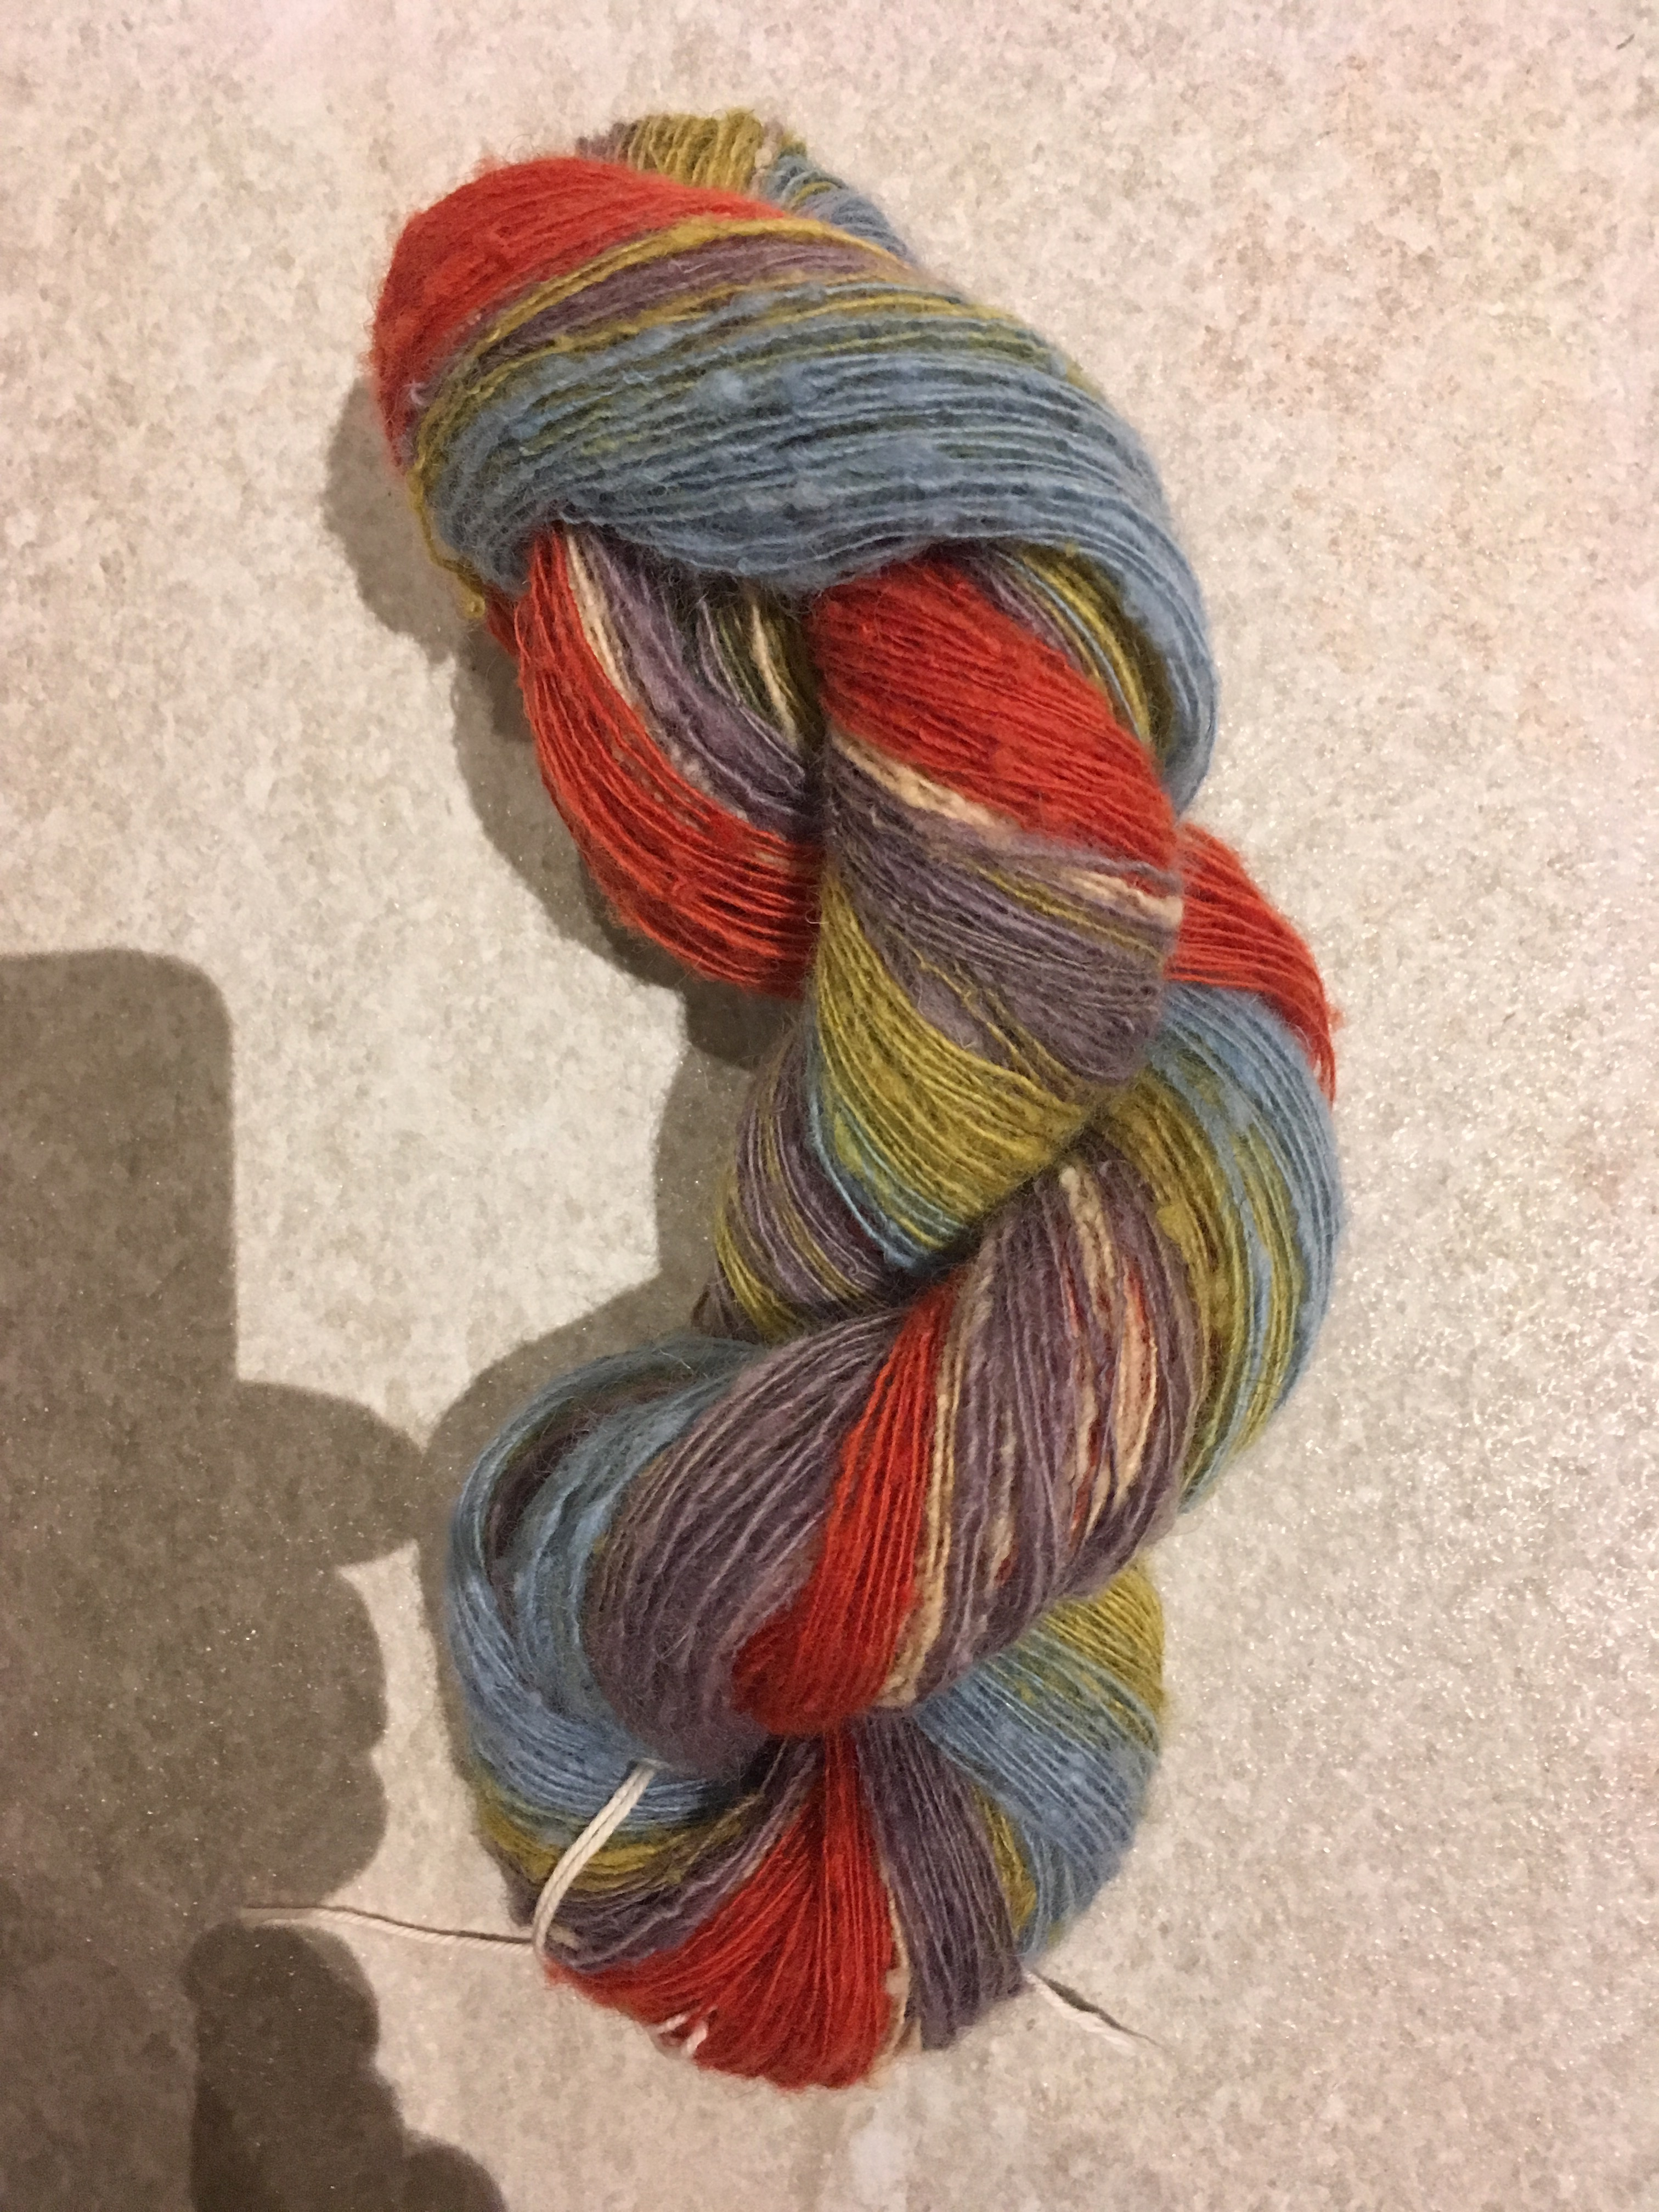 Colour-gradient yarn